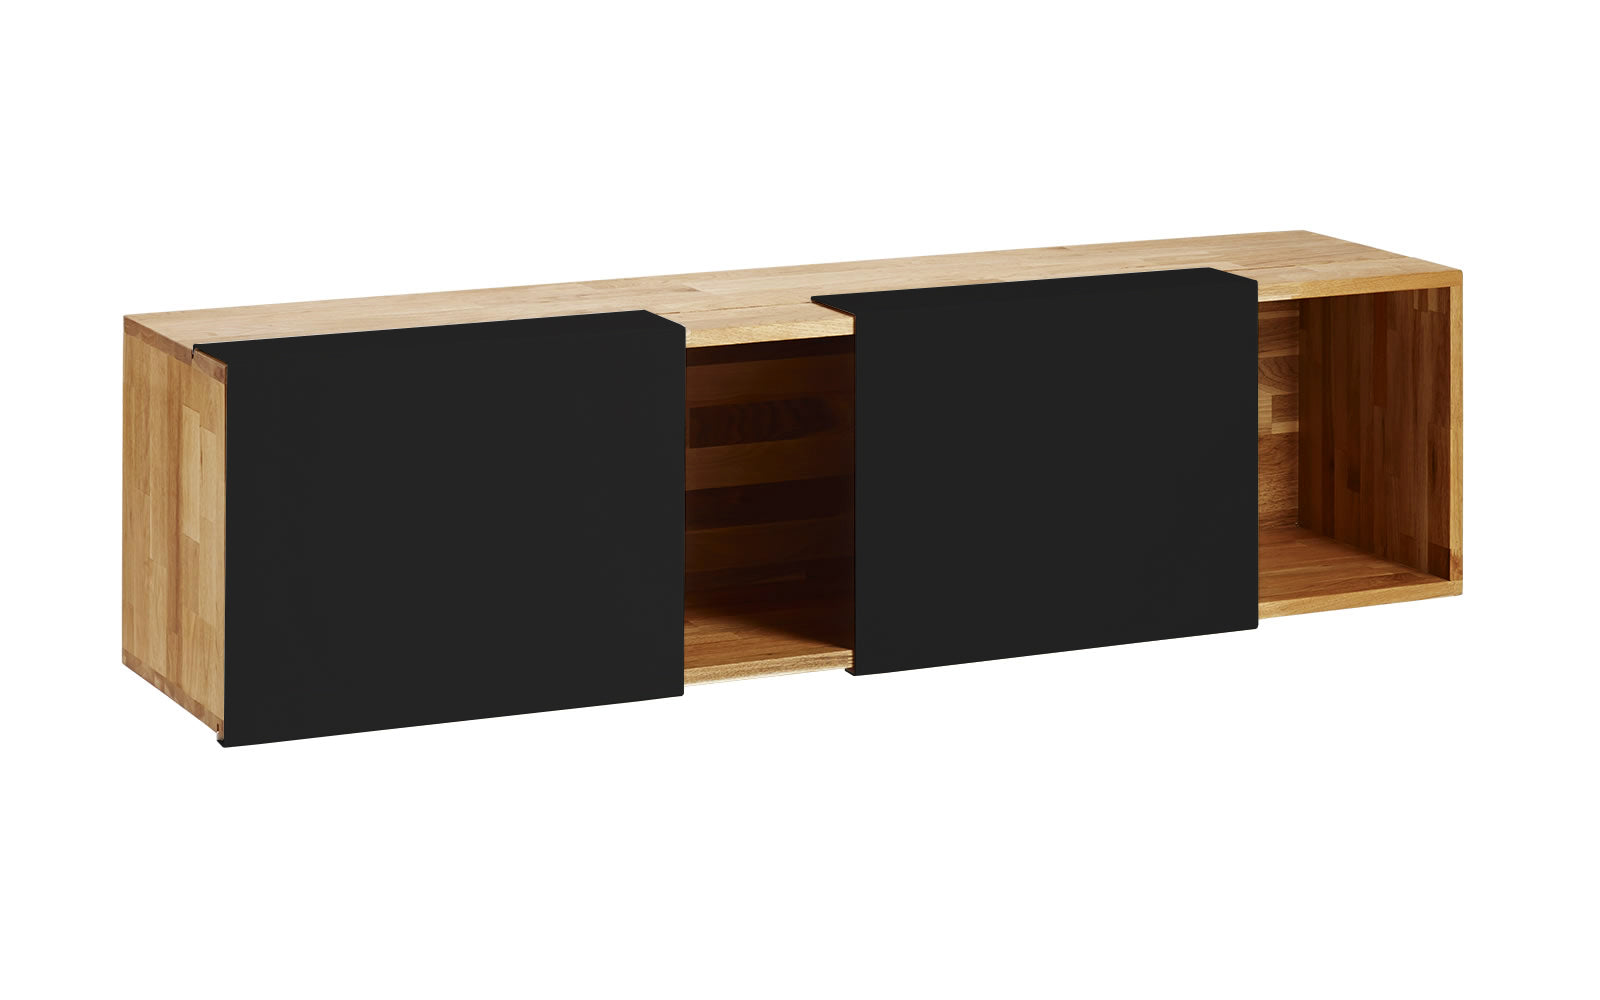 3X Wall Mounted Shelf- English Walnut, Matte Black Panel